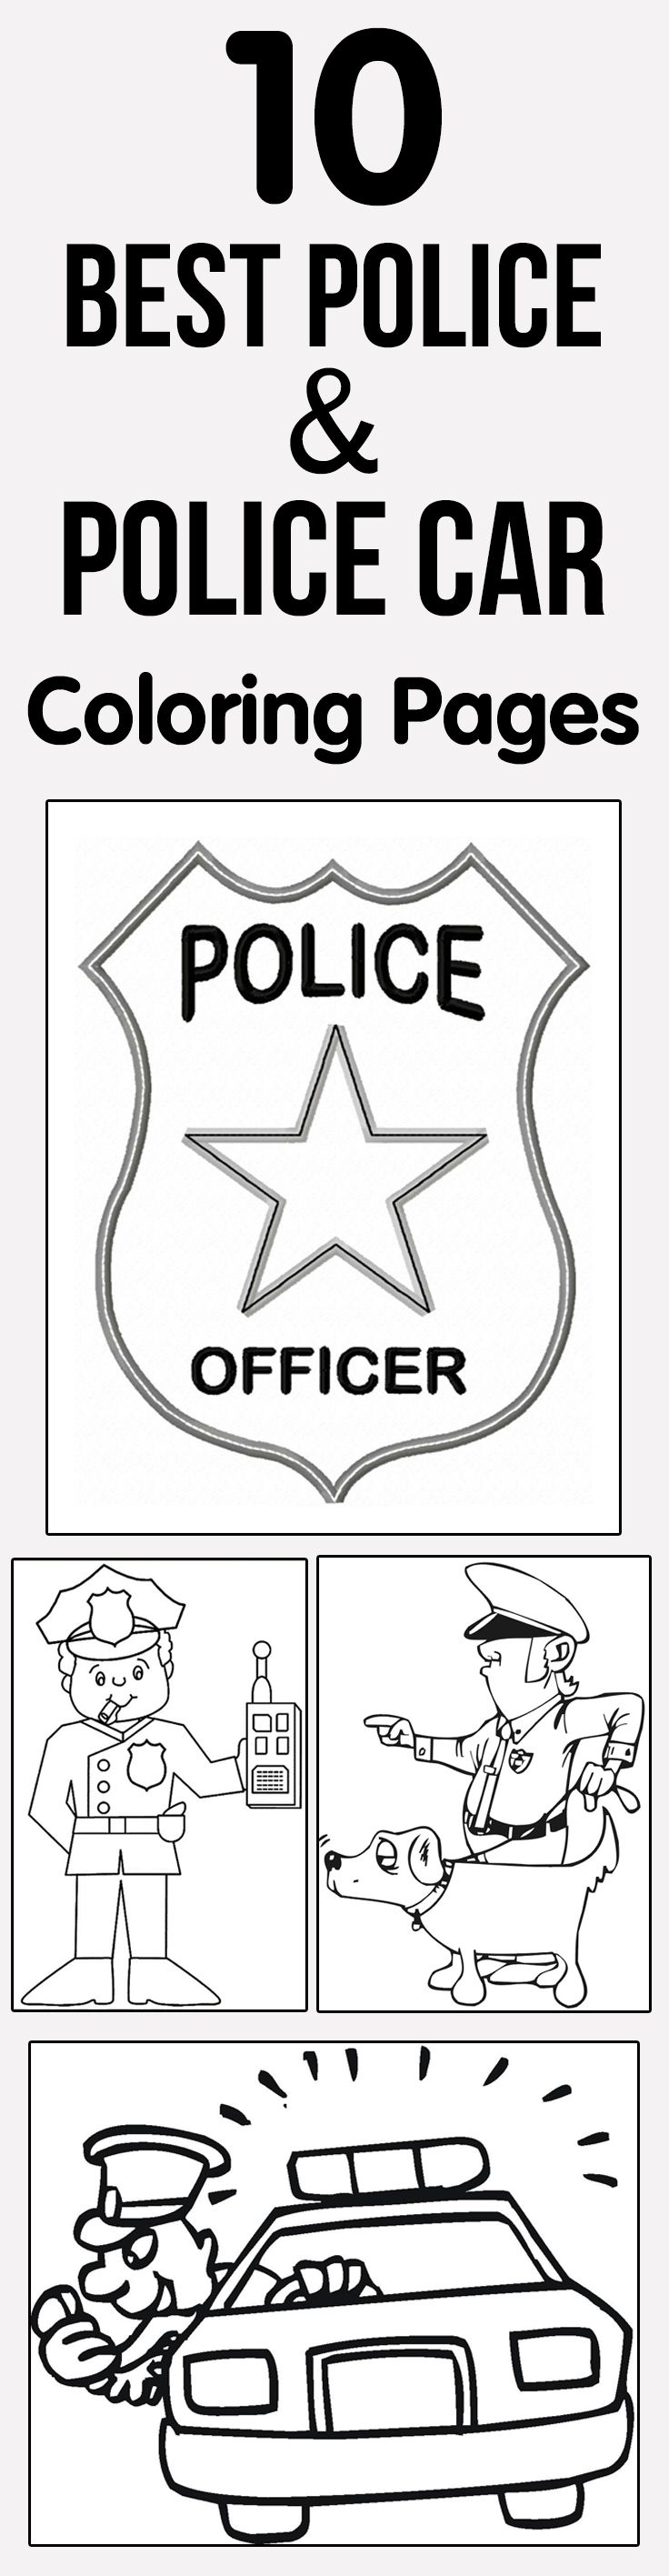 Color book party mn - 10 Best Police Police Car Coloring Pages Your Toddler Will Love